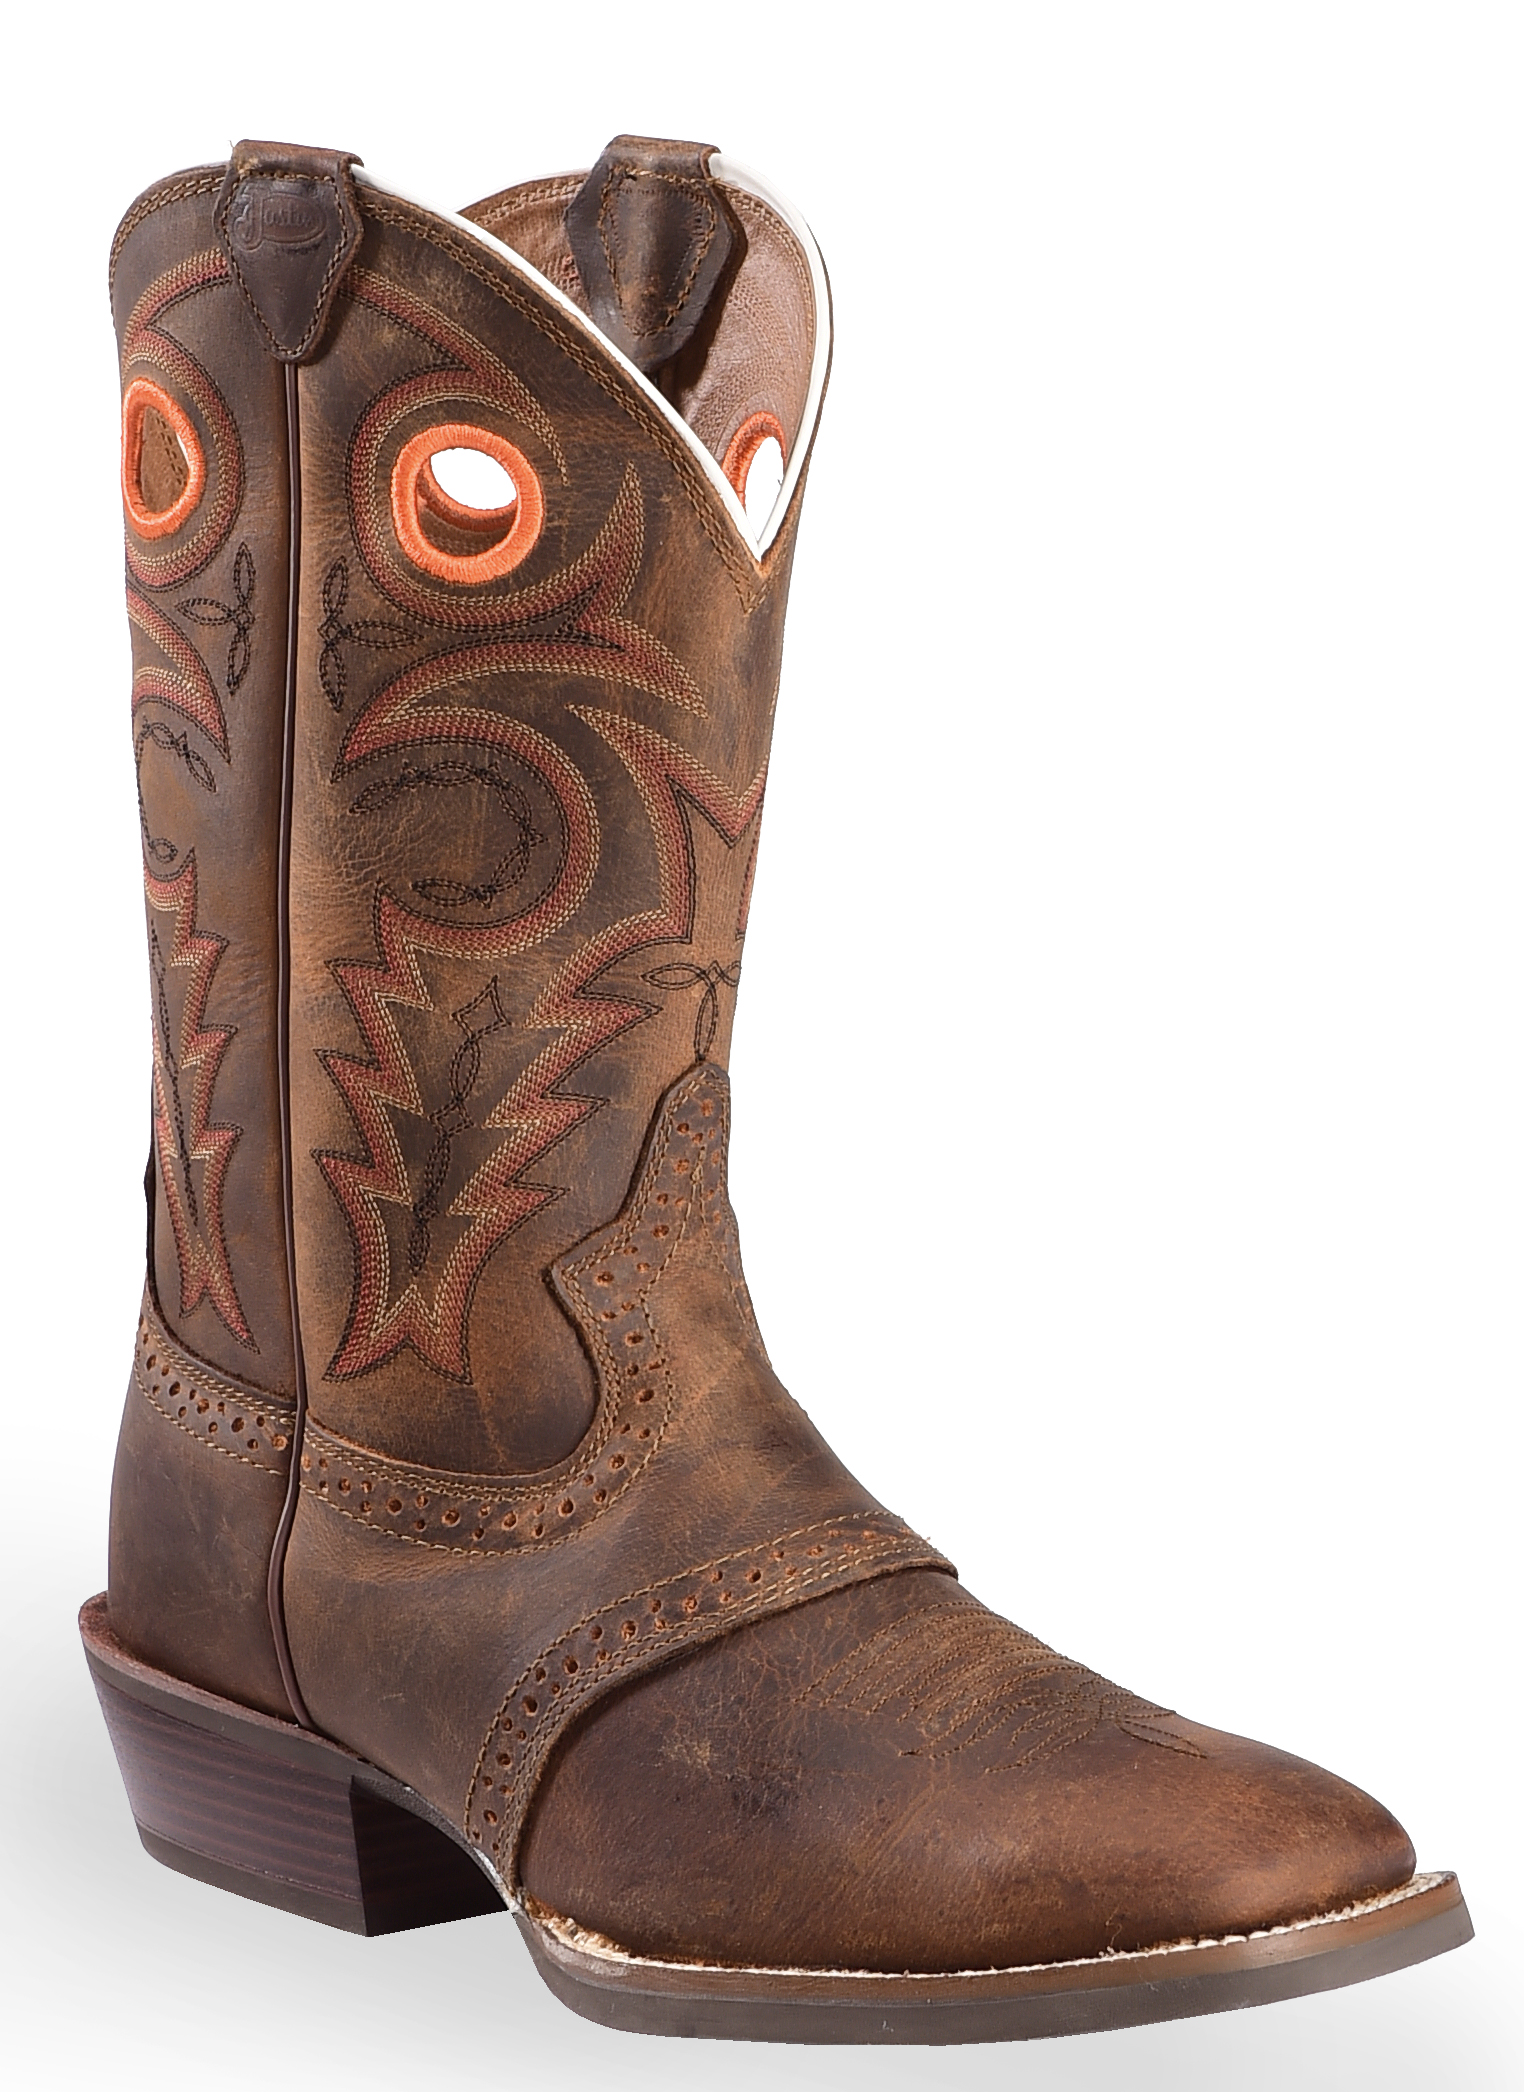 Justin leather work gloves - Justin Silver Saddle Vamp Cowboy Boots Square Toe Whiskey Hi Res